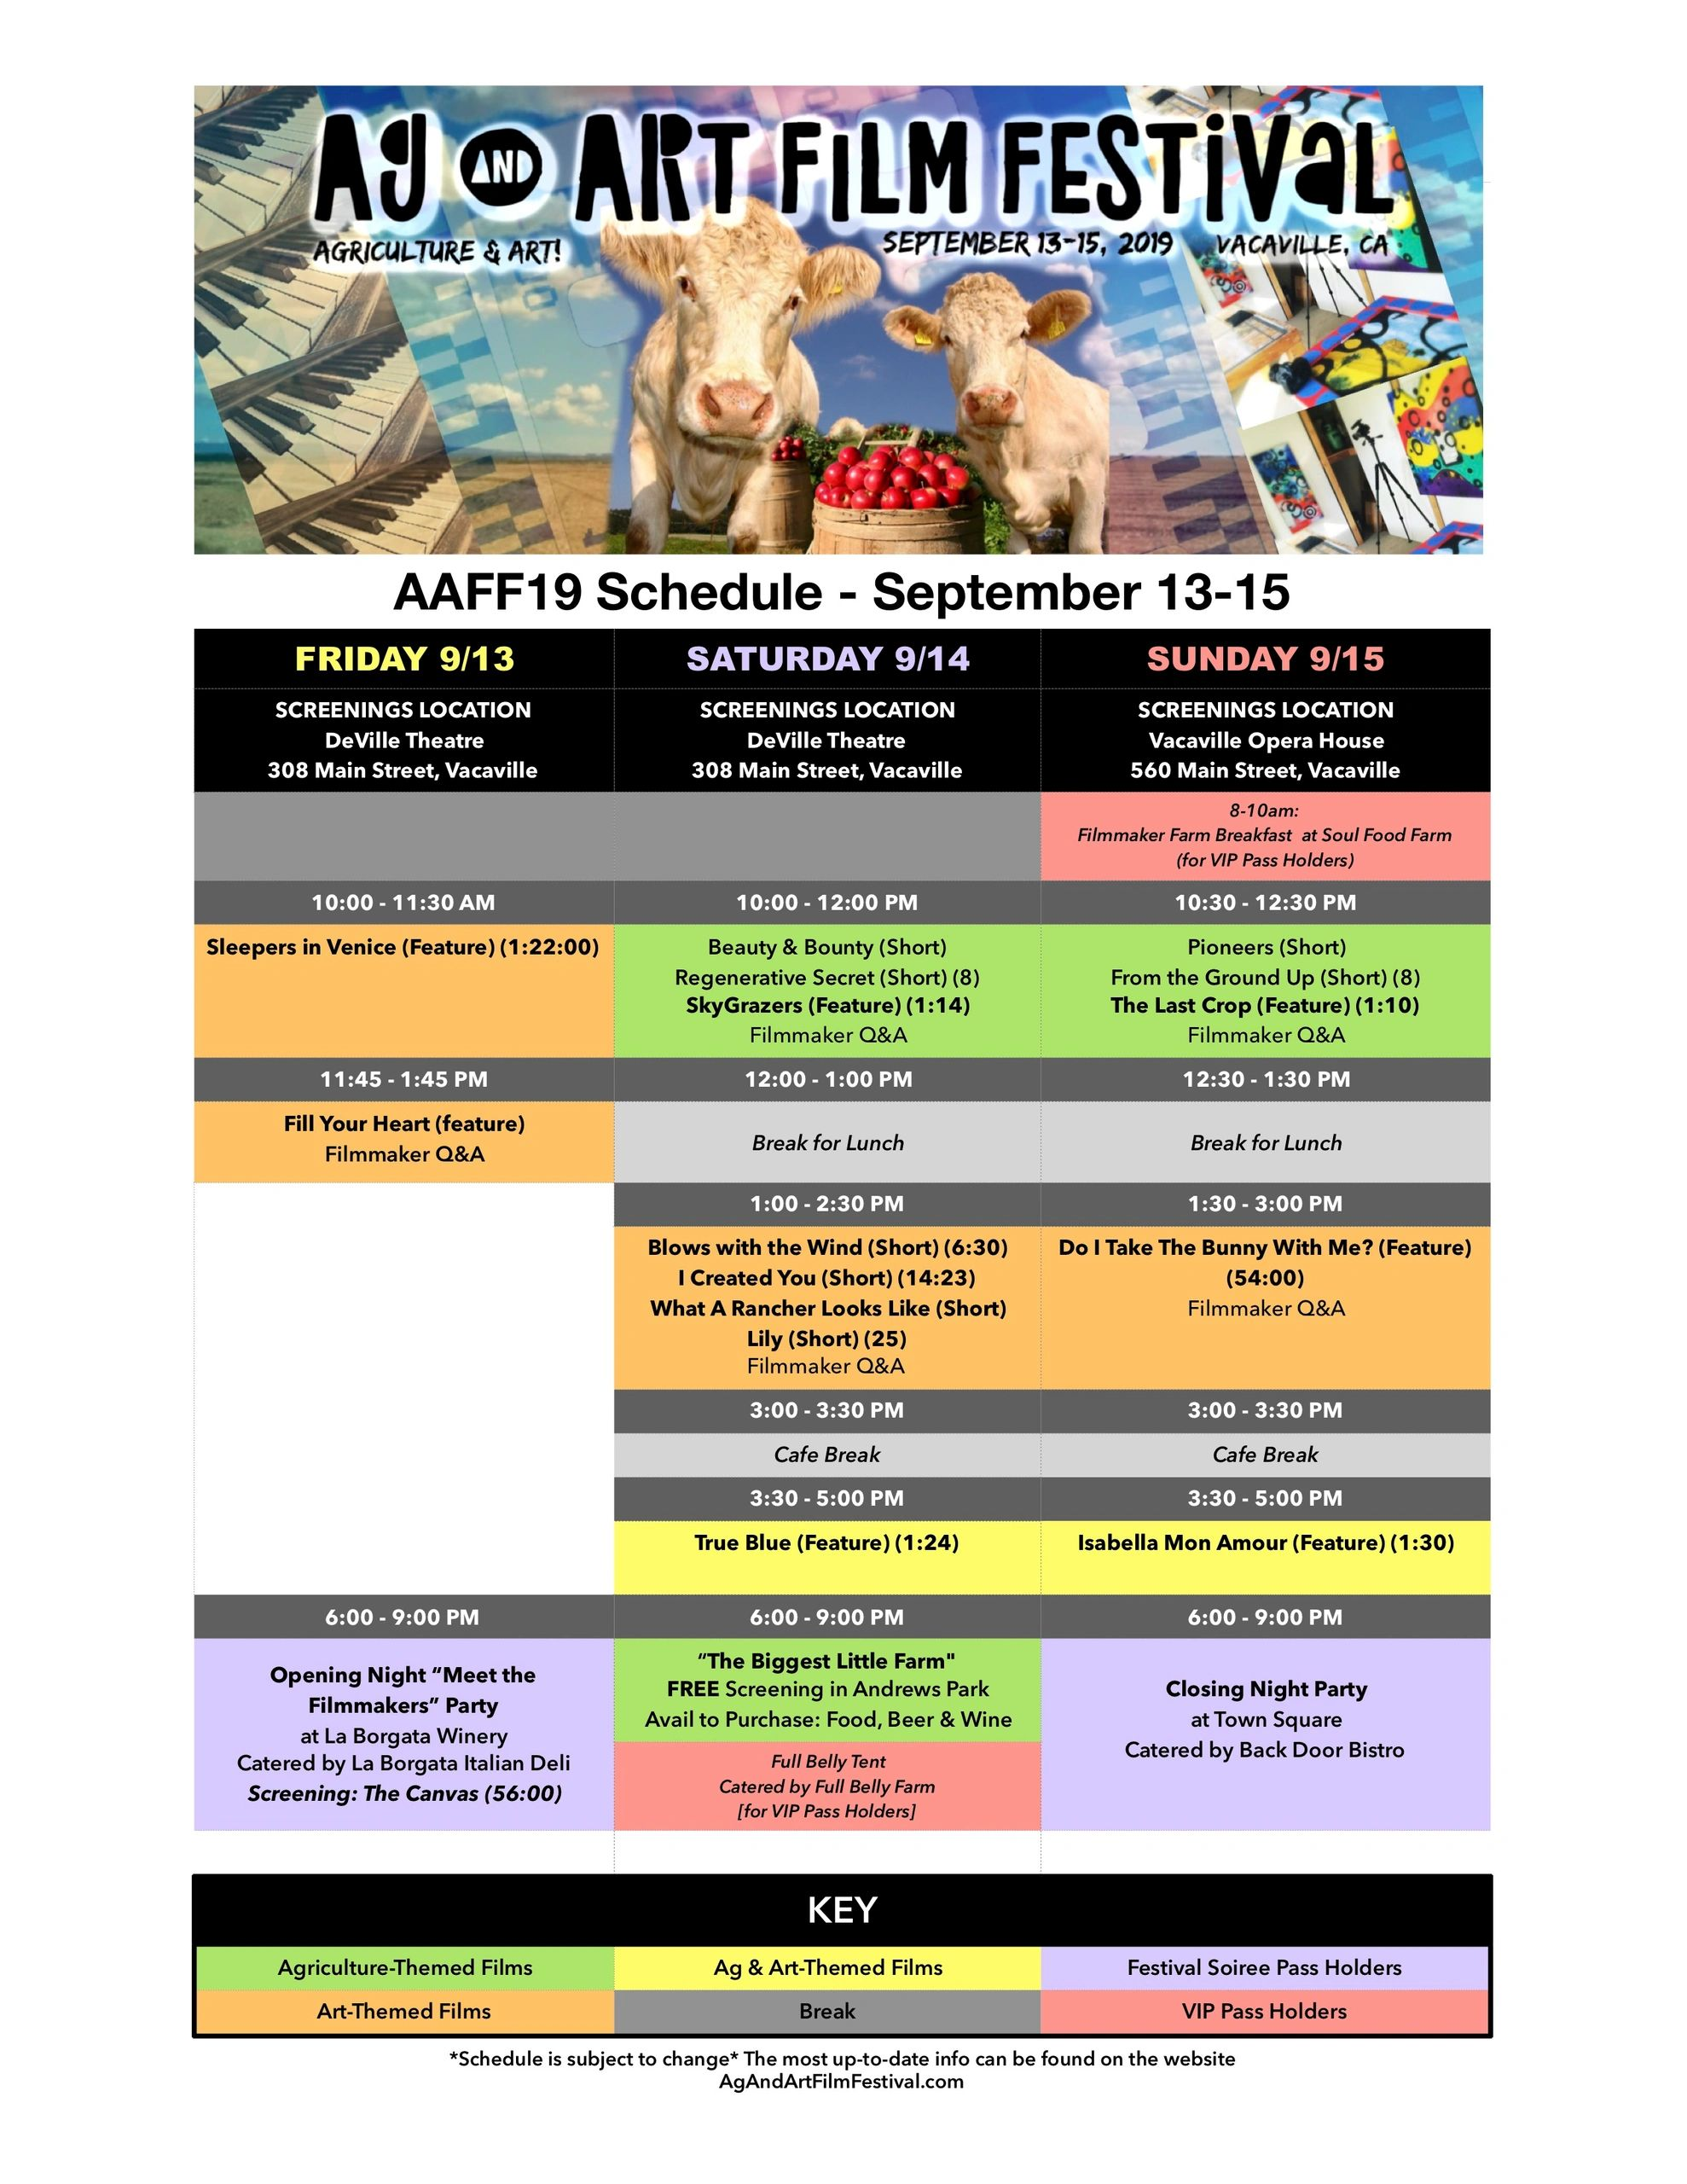 VIP PASSES ARE SOLD OUT!] Ag & Art Film Festival in